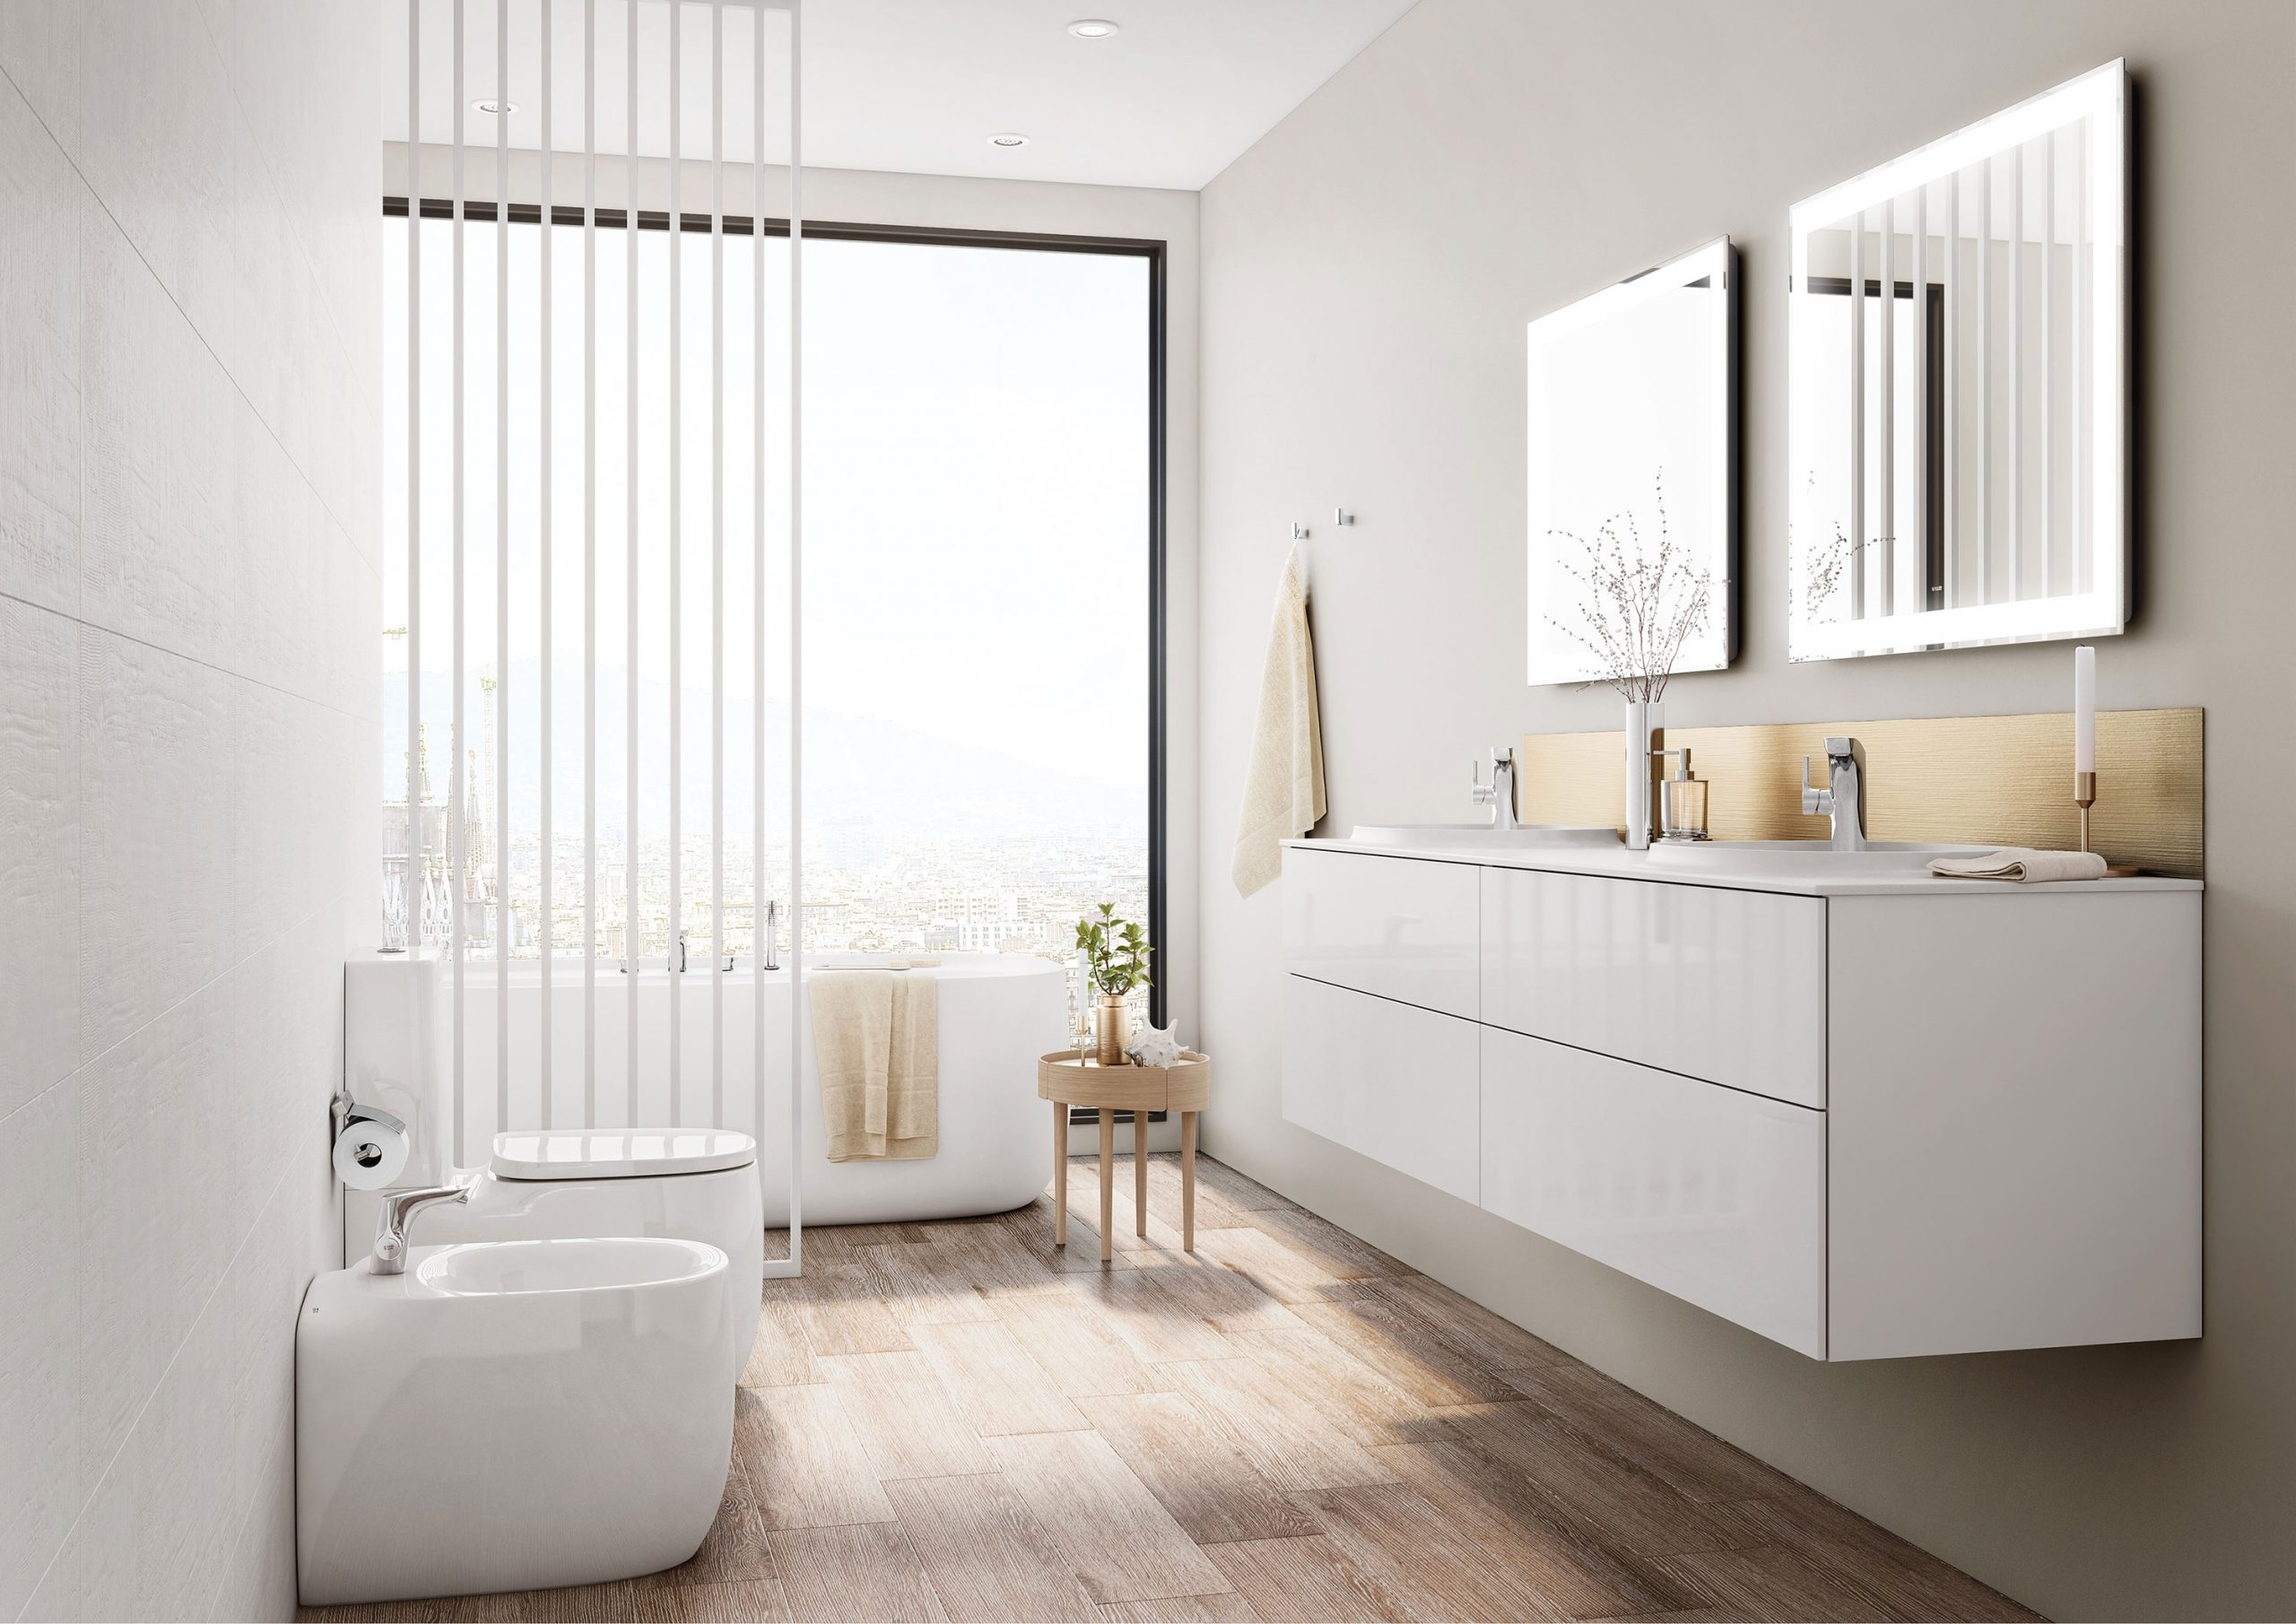 Ideas To Install An En Suite Bathroom │ Roca Life Small Ensuite Bathroom Ireland